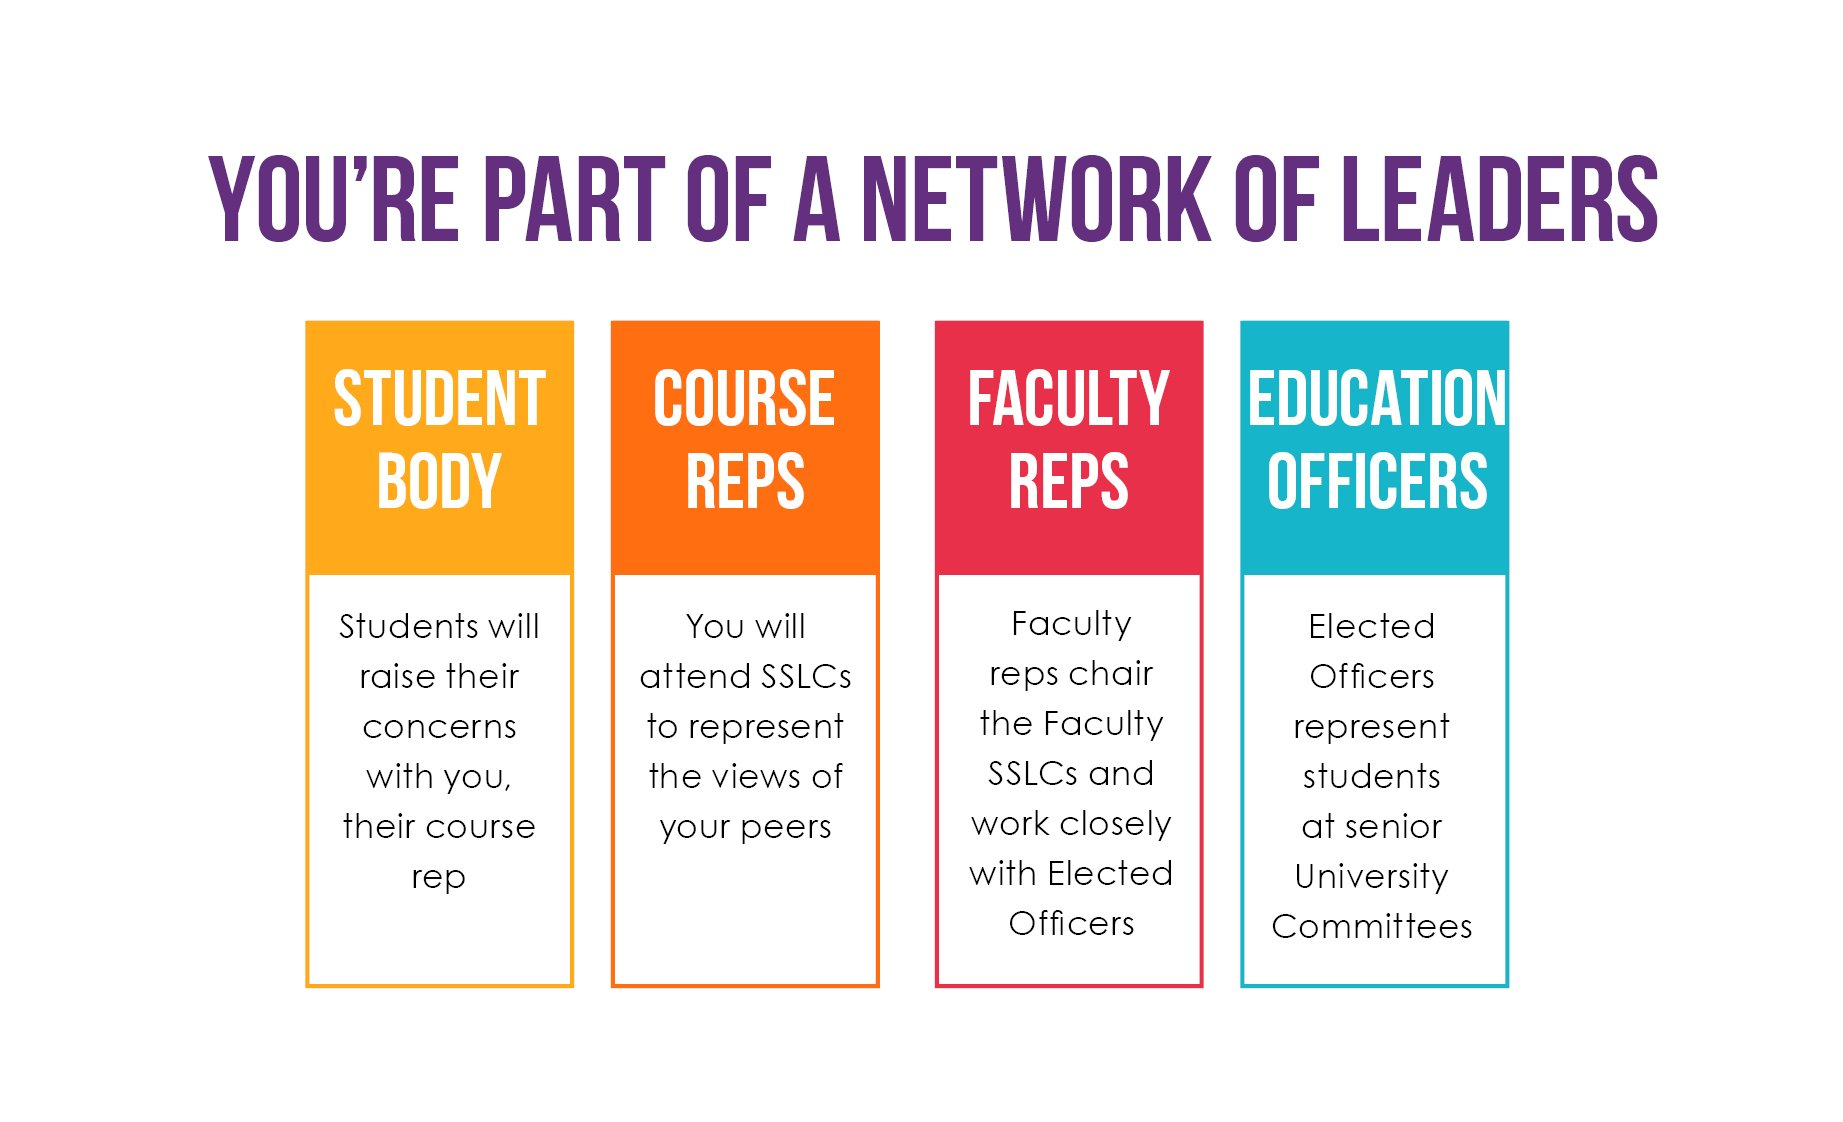 "Infographic titled: ""You're part of a Network of Leaders"". Underneath there are four columns, each is a different colour. The first column is titled ""Student Body"", underneath this heading it says ""Students will raise their concerns with you, their course rep"". In the second column it says ""Course Reps"", underneath this it says ""You will attend SSLCs to represent the views of your peers"". The third column is titled ""Faculty Reps"", underneath this it says ""Faculty reps chair the Faculty SSLCs and work closely with Elected Officers"". The Fourth column is titled ""Education Officers"", underneath this it says ""Elected officers represent students at senior University Committees""."